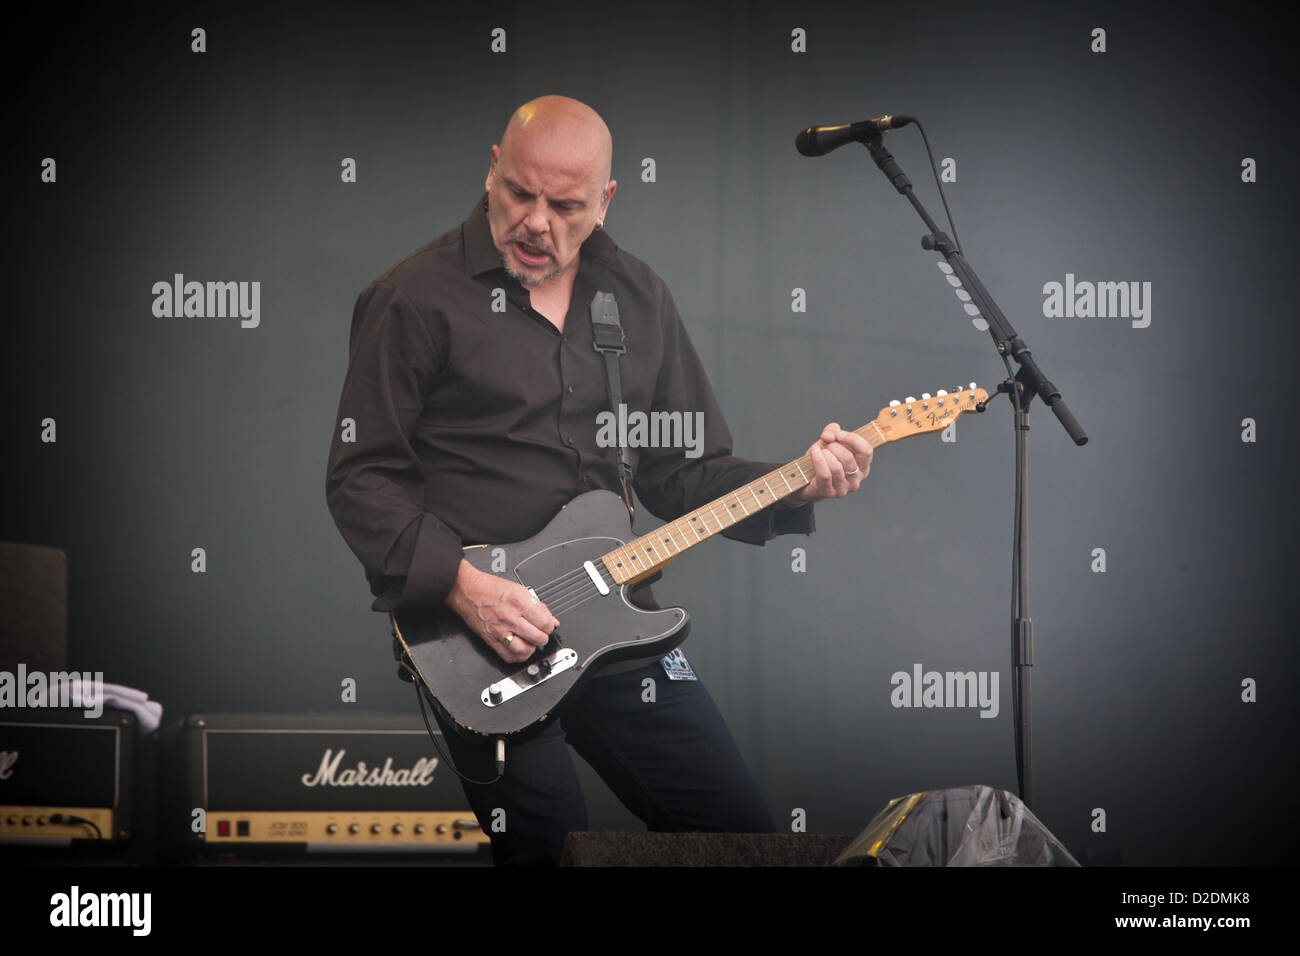 The Stranglers guitarist and vocalist BAZ WARNE on stage at V Festival, Essex - Stock Image